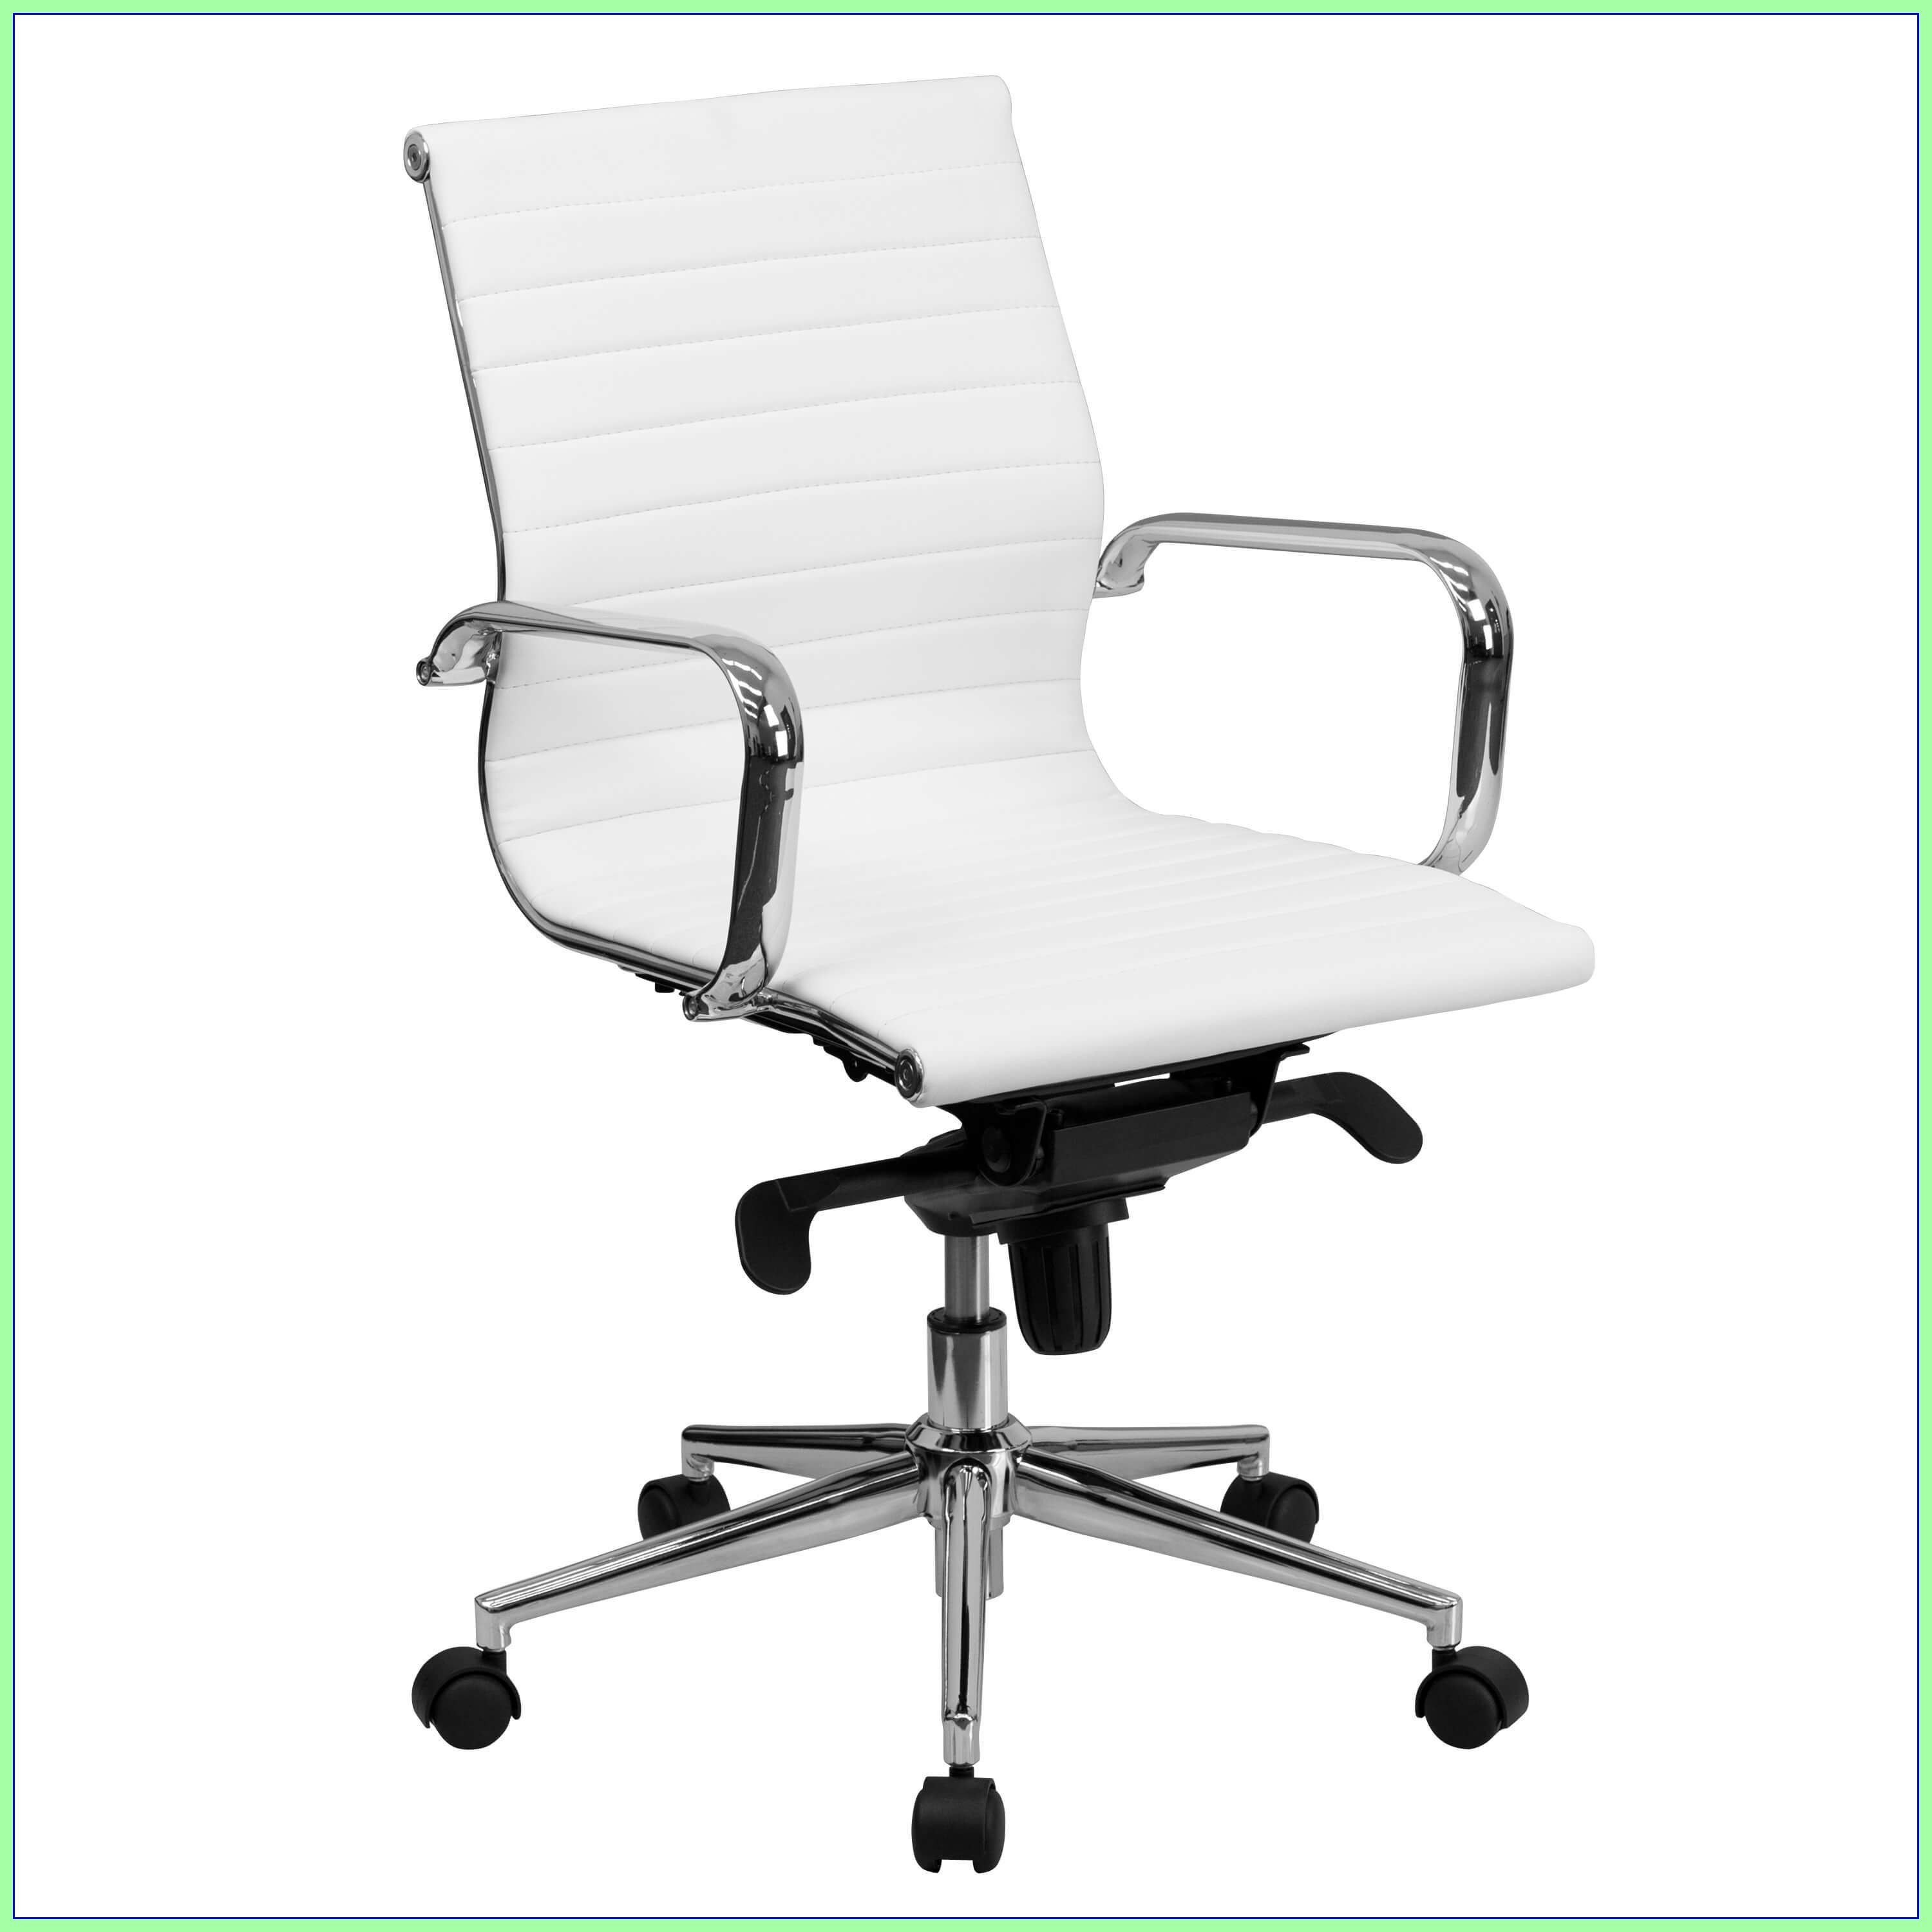 39 Reference Of Cool Desk Chair No Wheels Di 2020